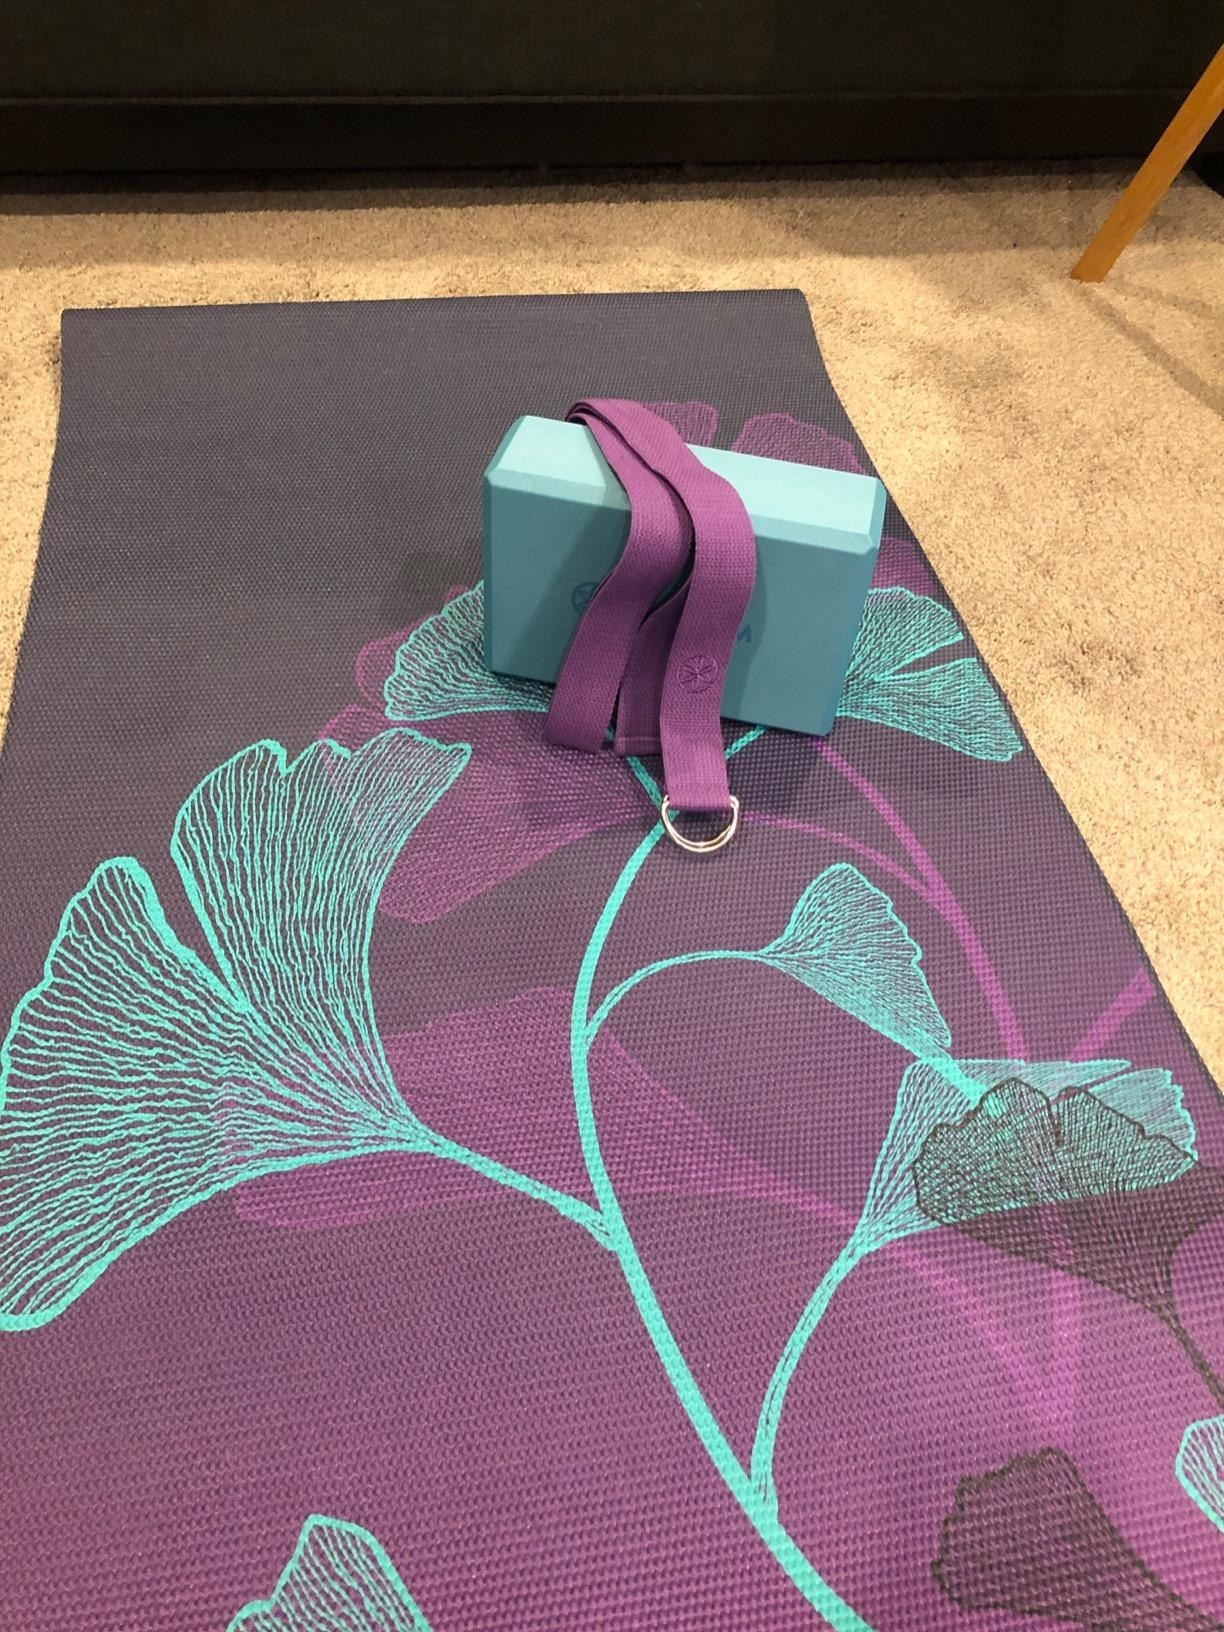 reviewer image of the gaiam beginner's yoga kit